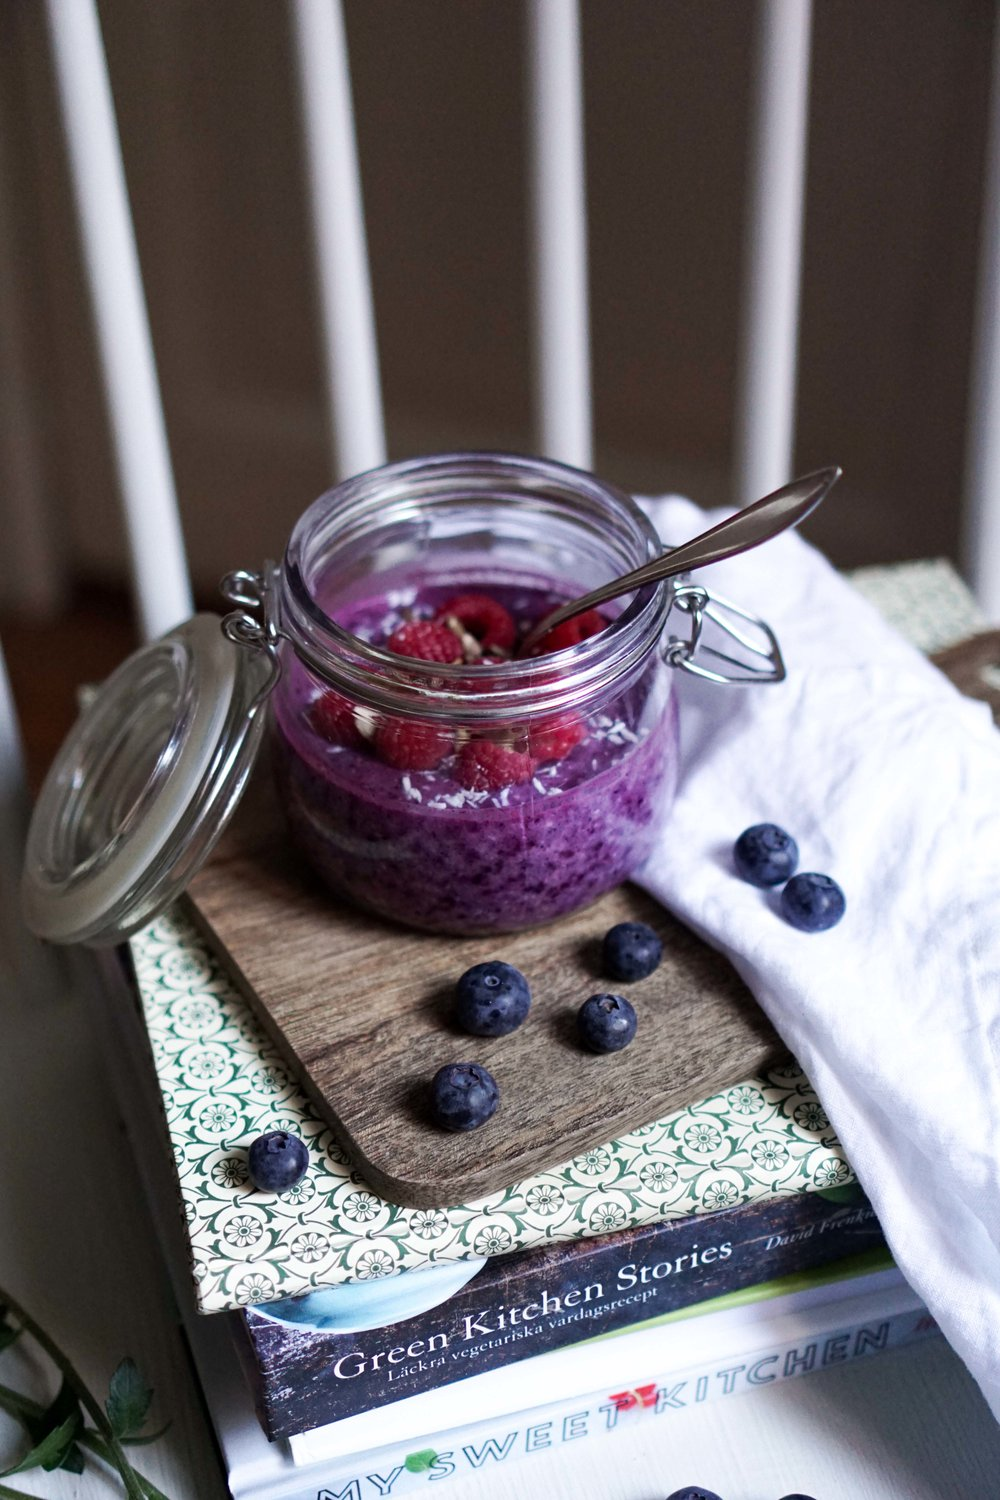 Green Kitchen Stories Cookbook Blueberry Overnight Oats And An Update On Life Cake And Beans